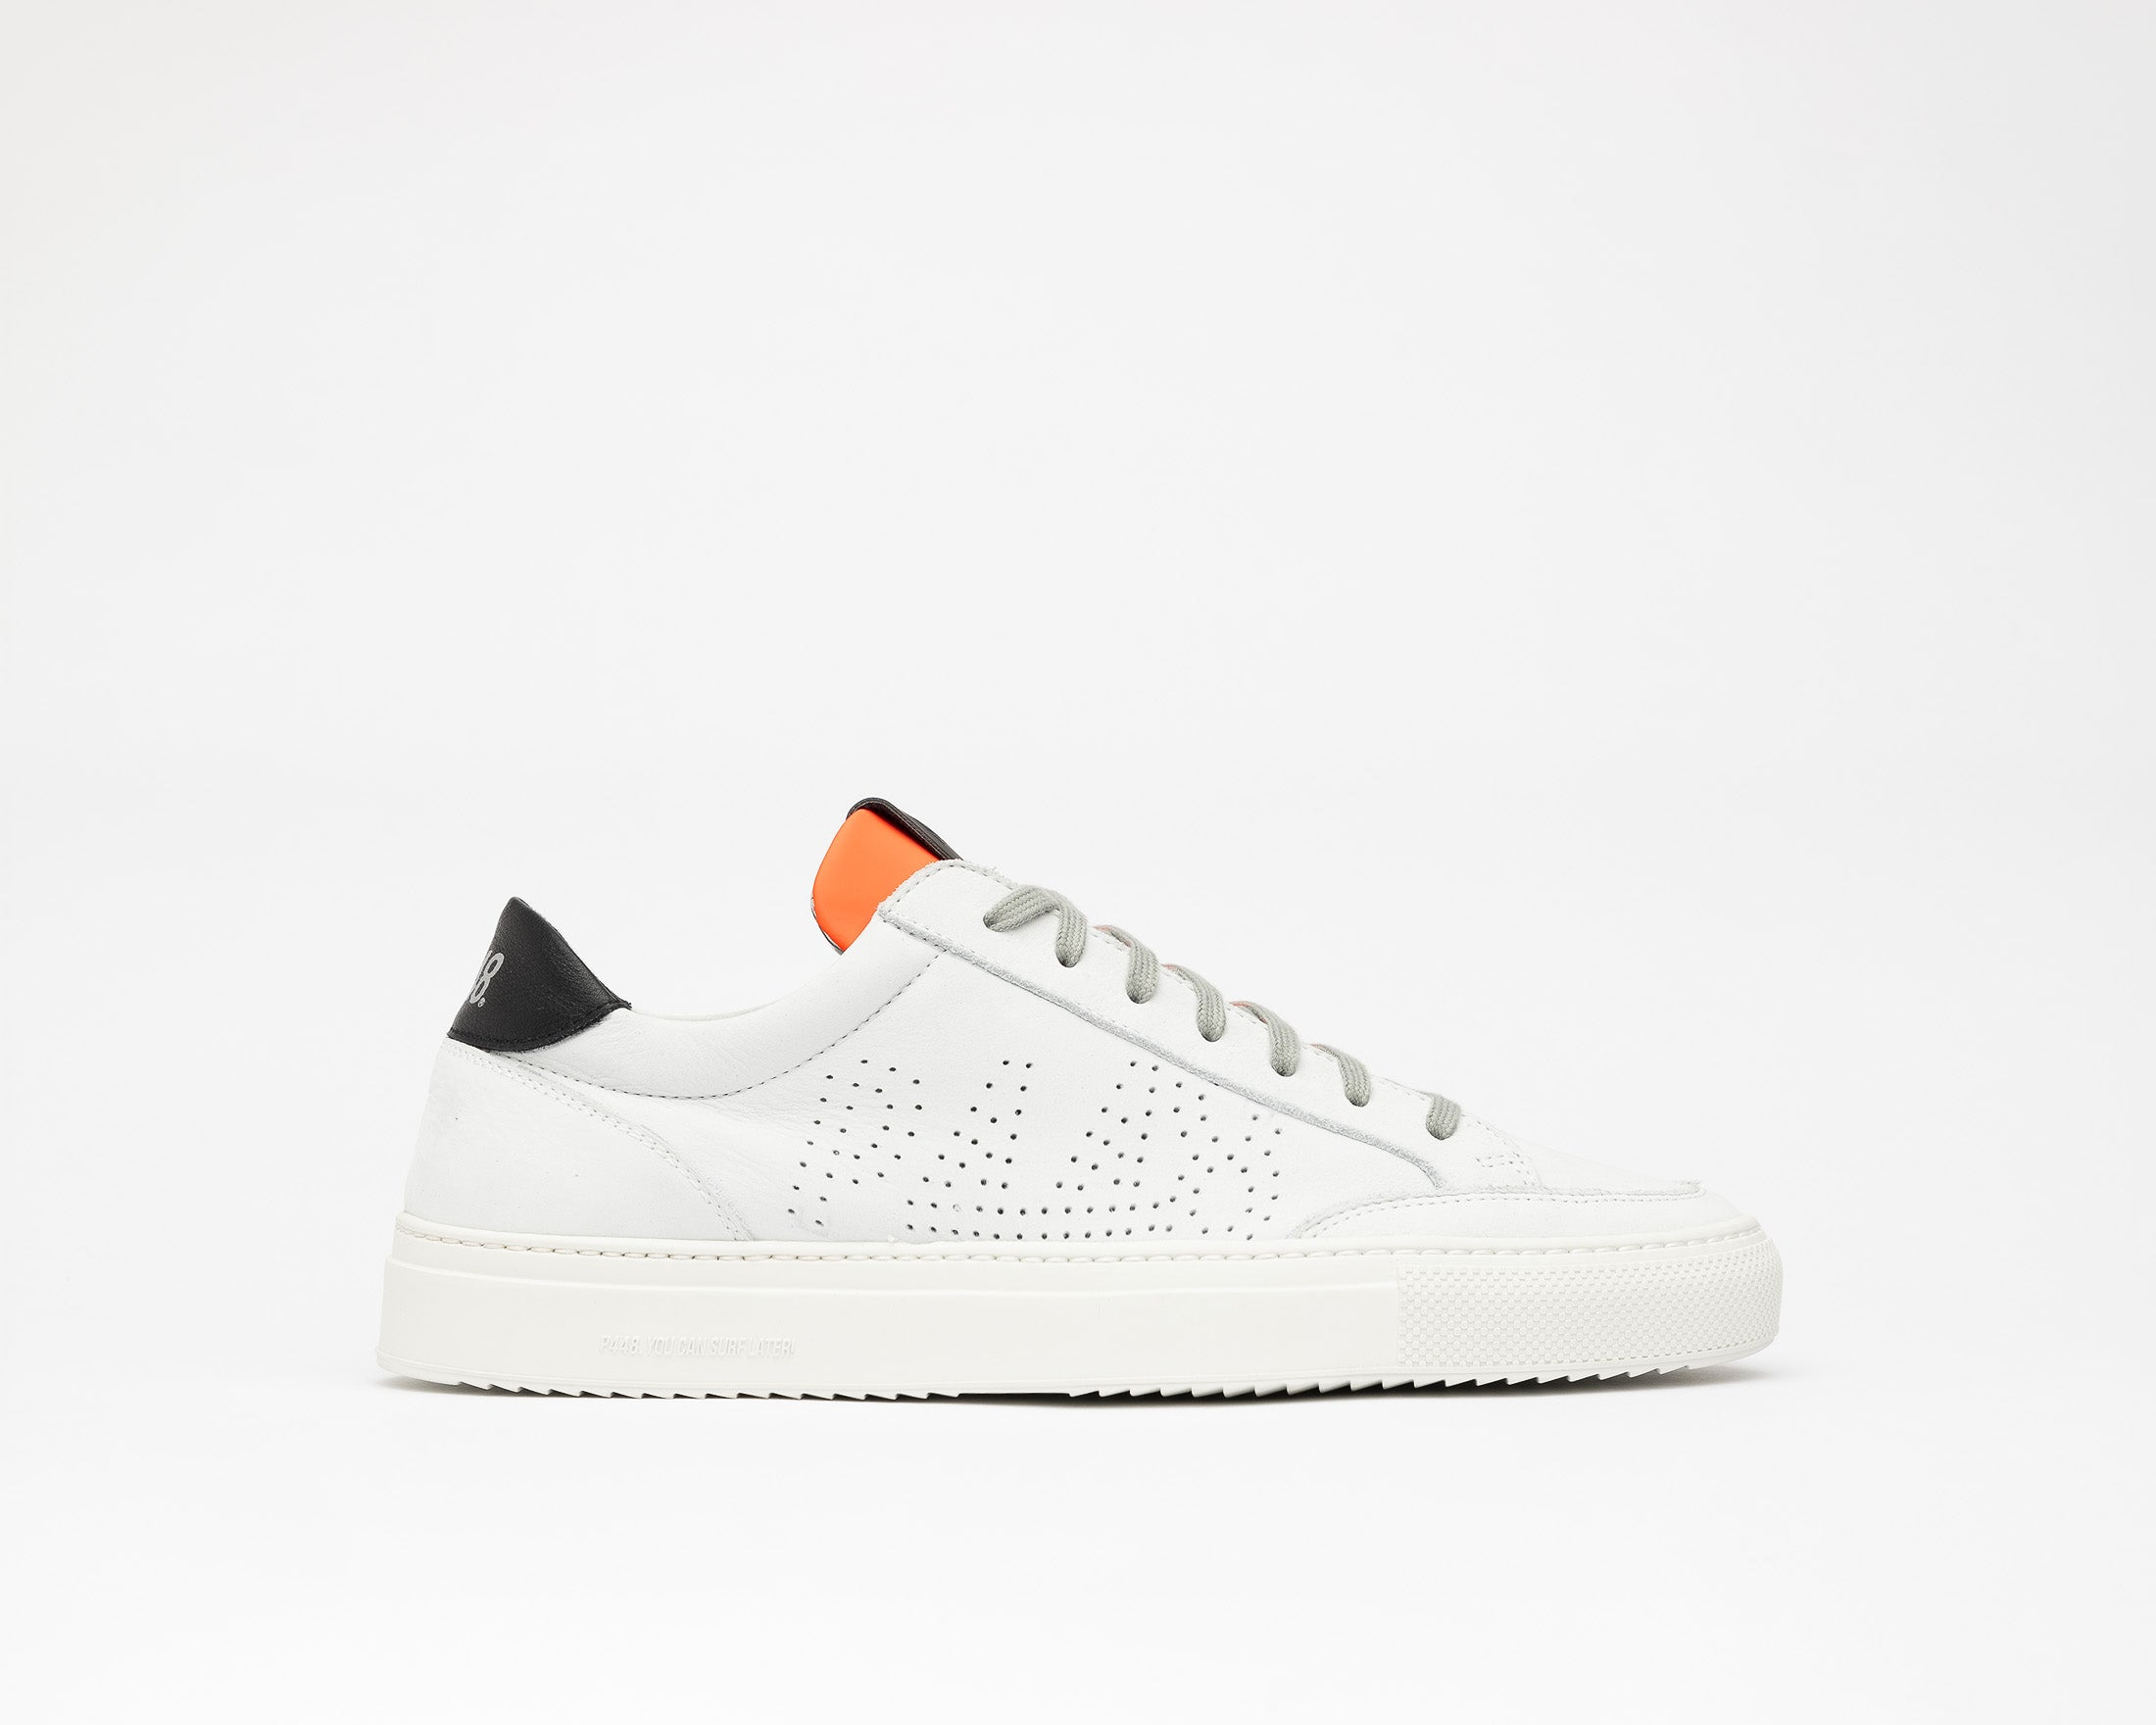 Soho White/Orange - Mens Sneaker - Profile